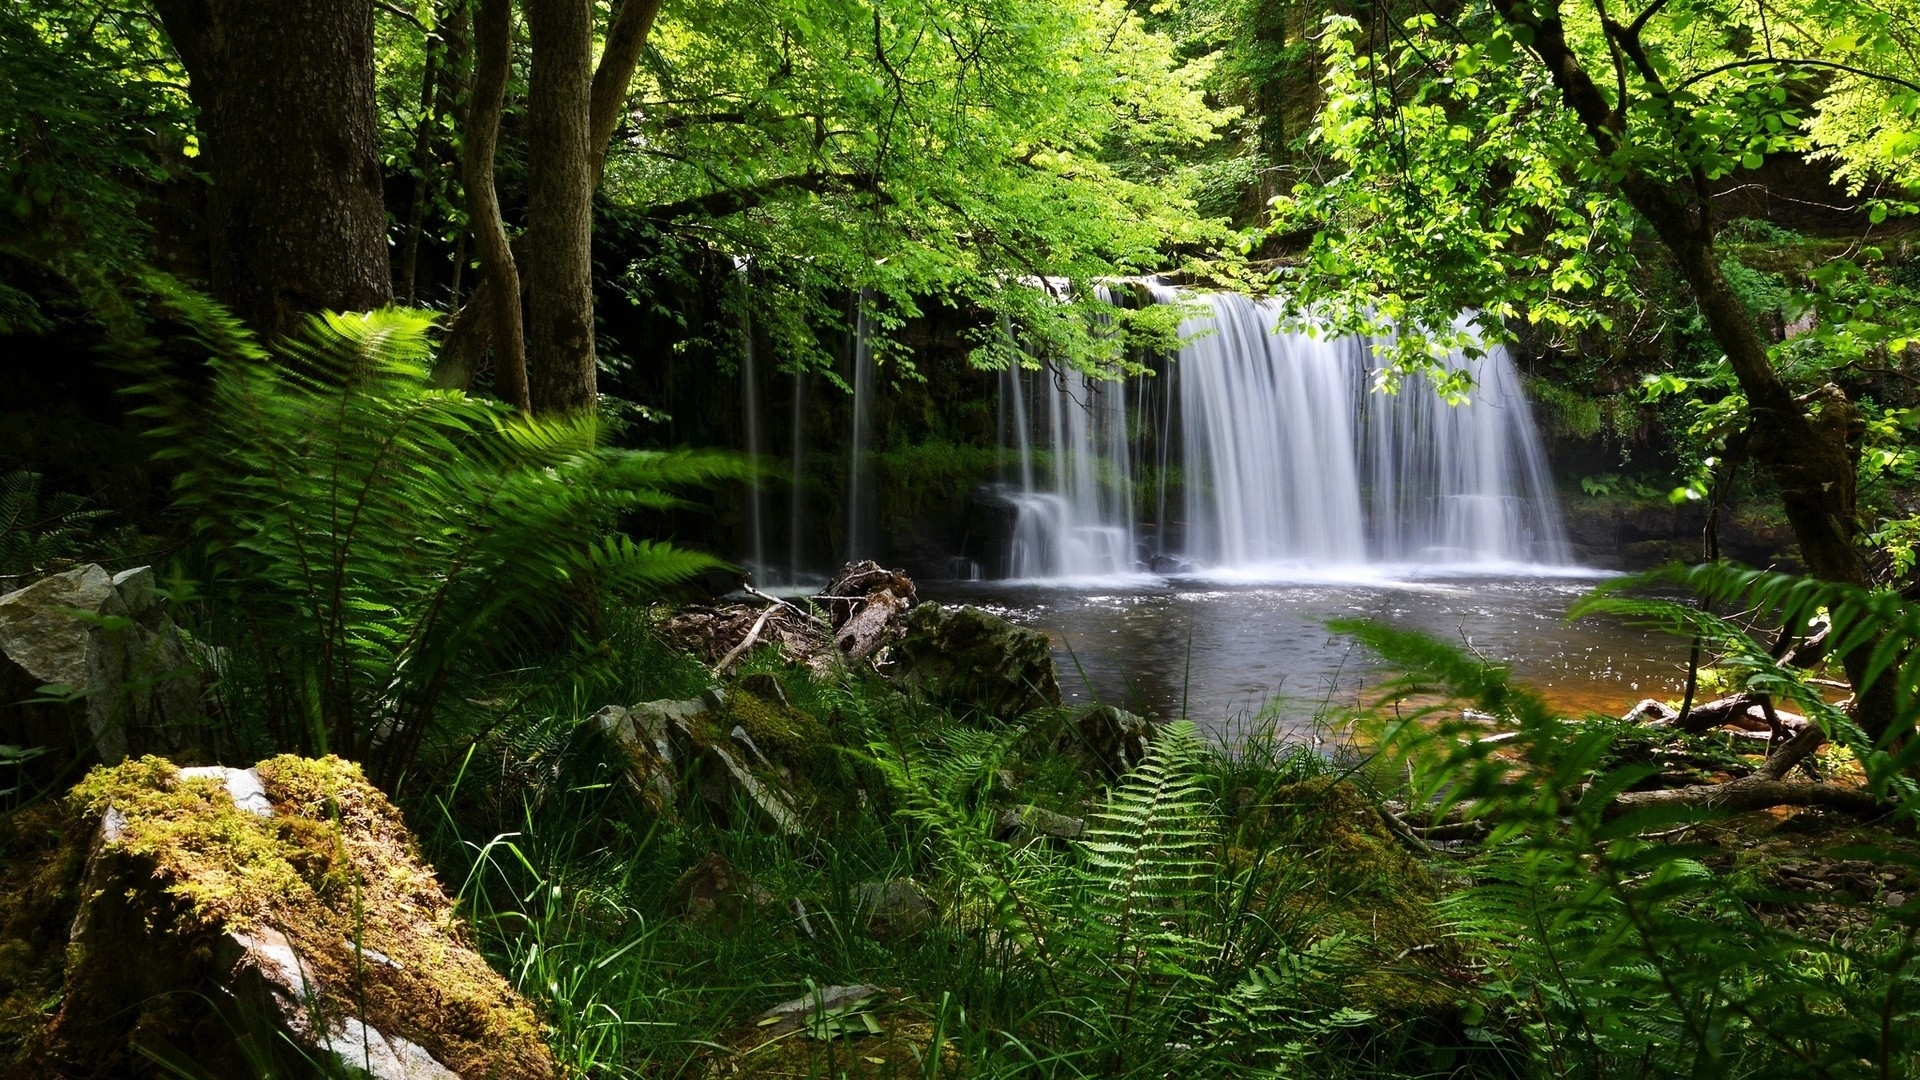 10 new hd waterfall wallpapers 1080p full hd 1080p for pc desktop